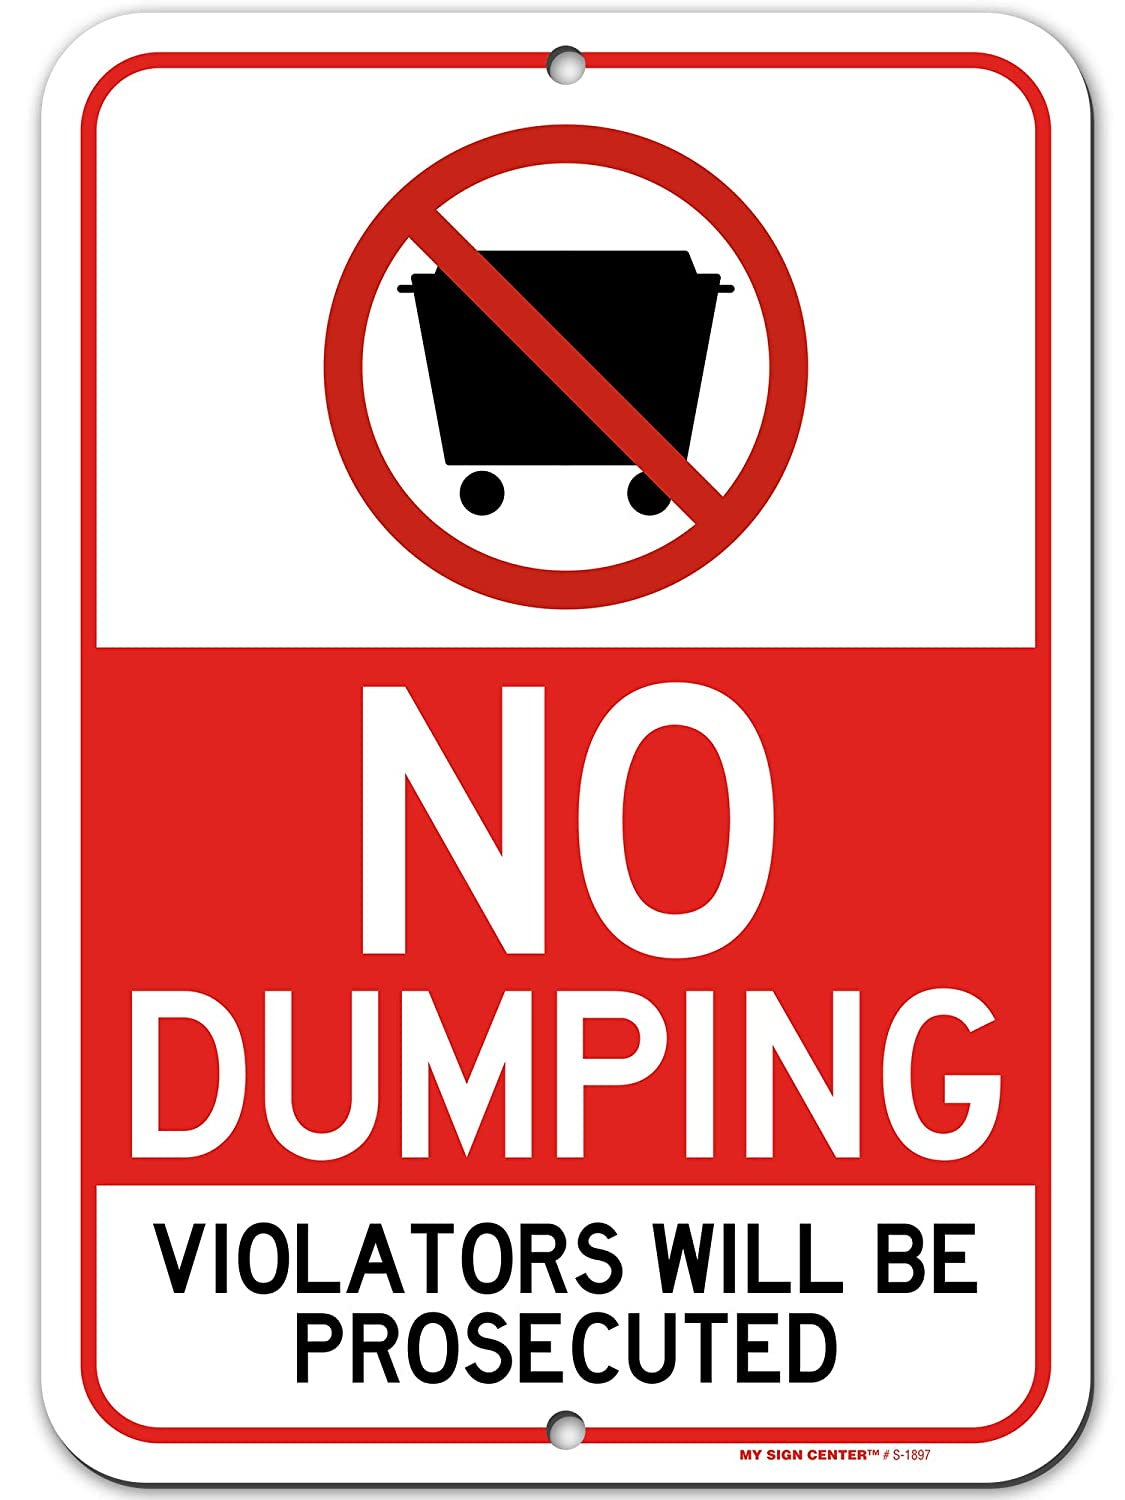 """Private Property No Dumping Sign Violators Will Be Prosecuted, 10"""" x 14"""", Made Out of .040 Rust-Free Aluminum, Indoor/Outdoor Use, UV Protected and Fade-Resistant, by My Sign Center"""